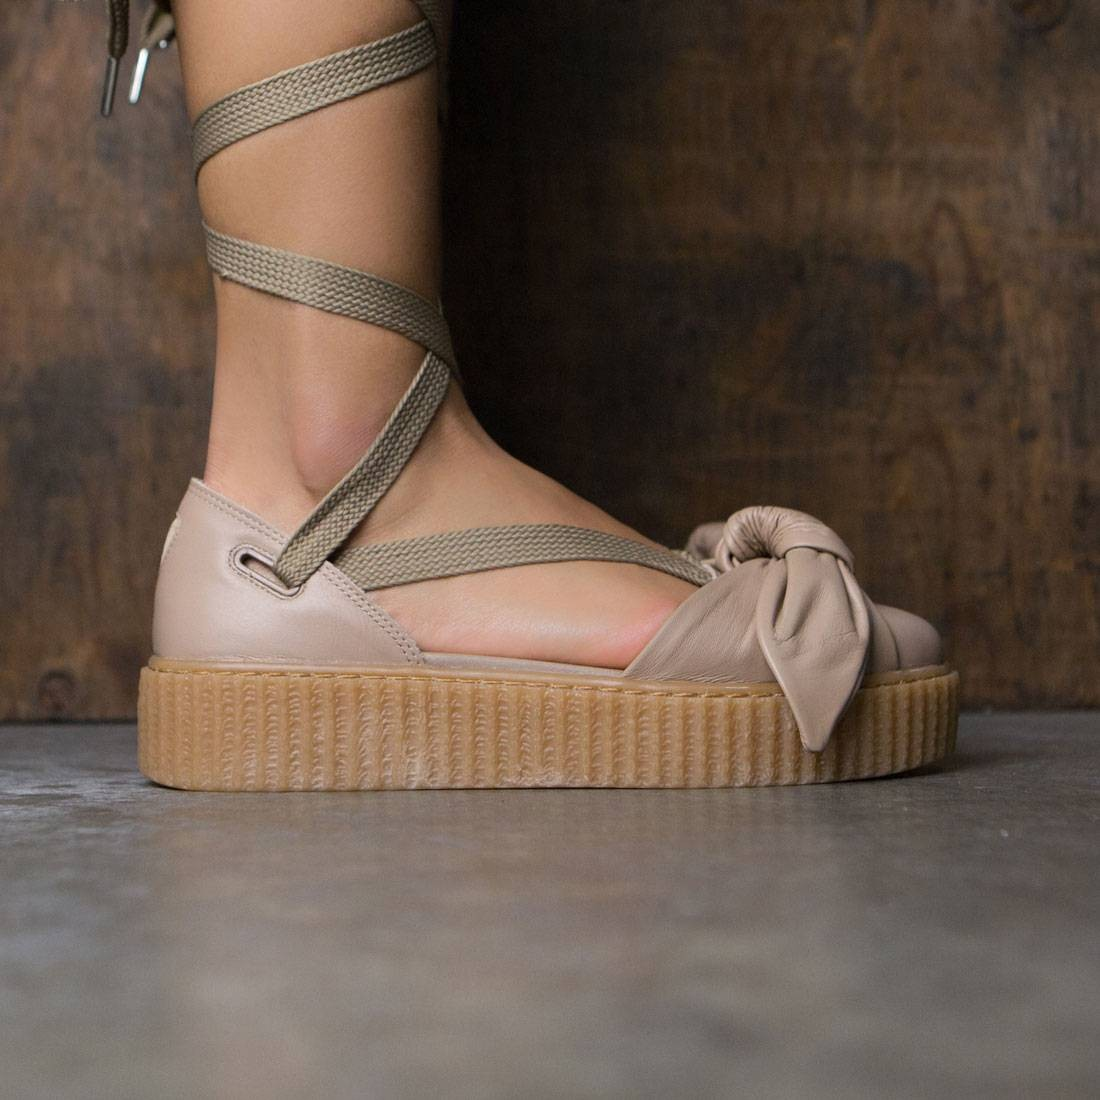 661d8a165e2 Puma x Fenty By Rihanna Women Bow Creeper Sandal natural oatmeal